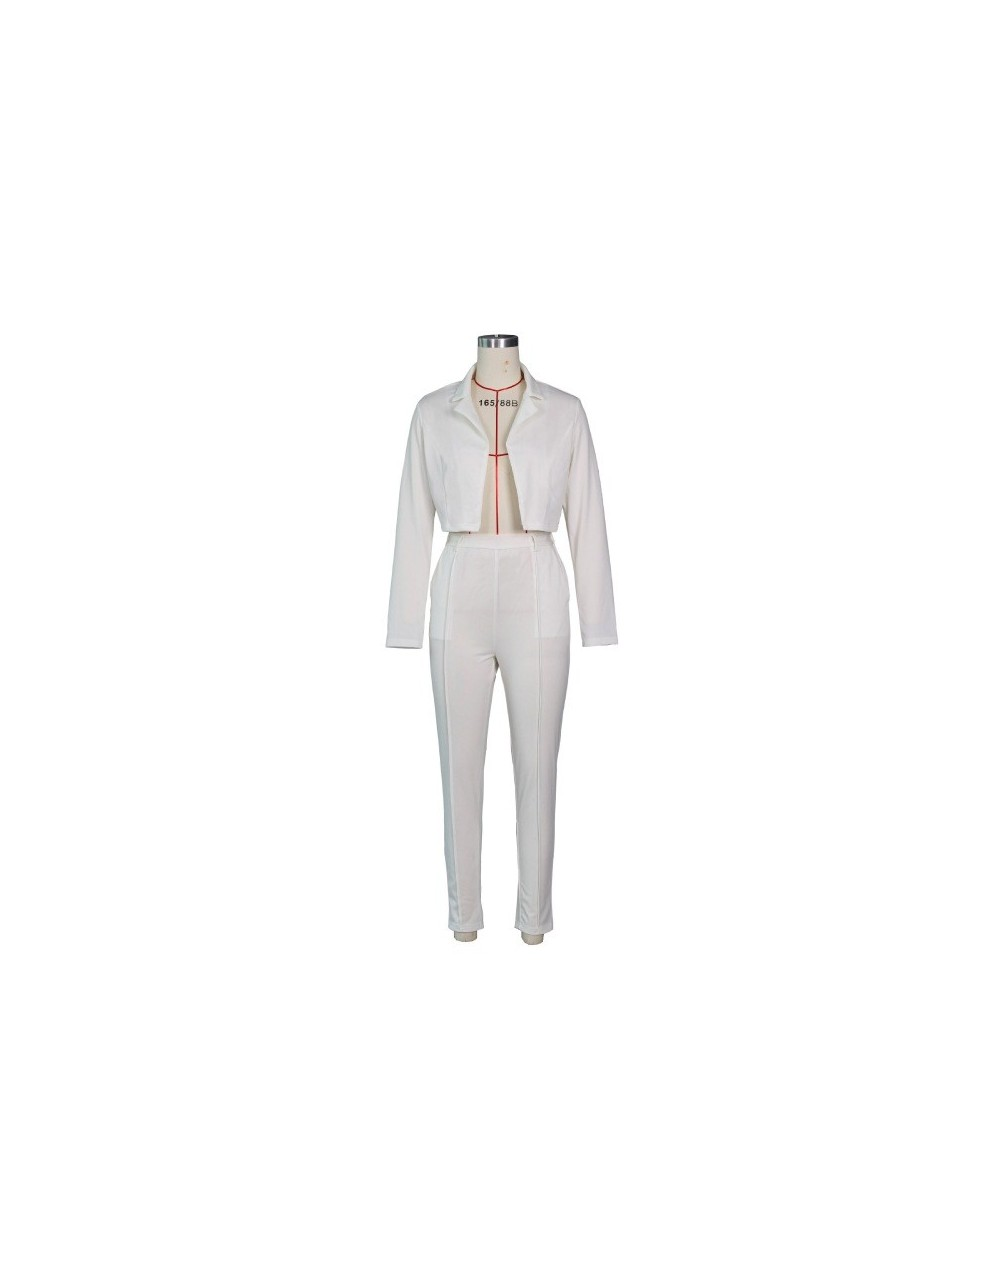 Neon Blazer Set Women Suits Office Sets Slim Sashes Cropped Blazer And Pants Suits Fall 2019 Ladies Suits 2 Pieces Set - Whi...